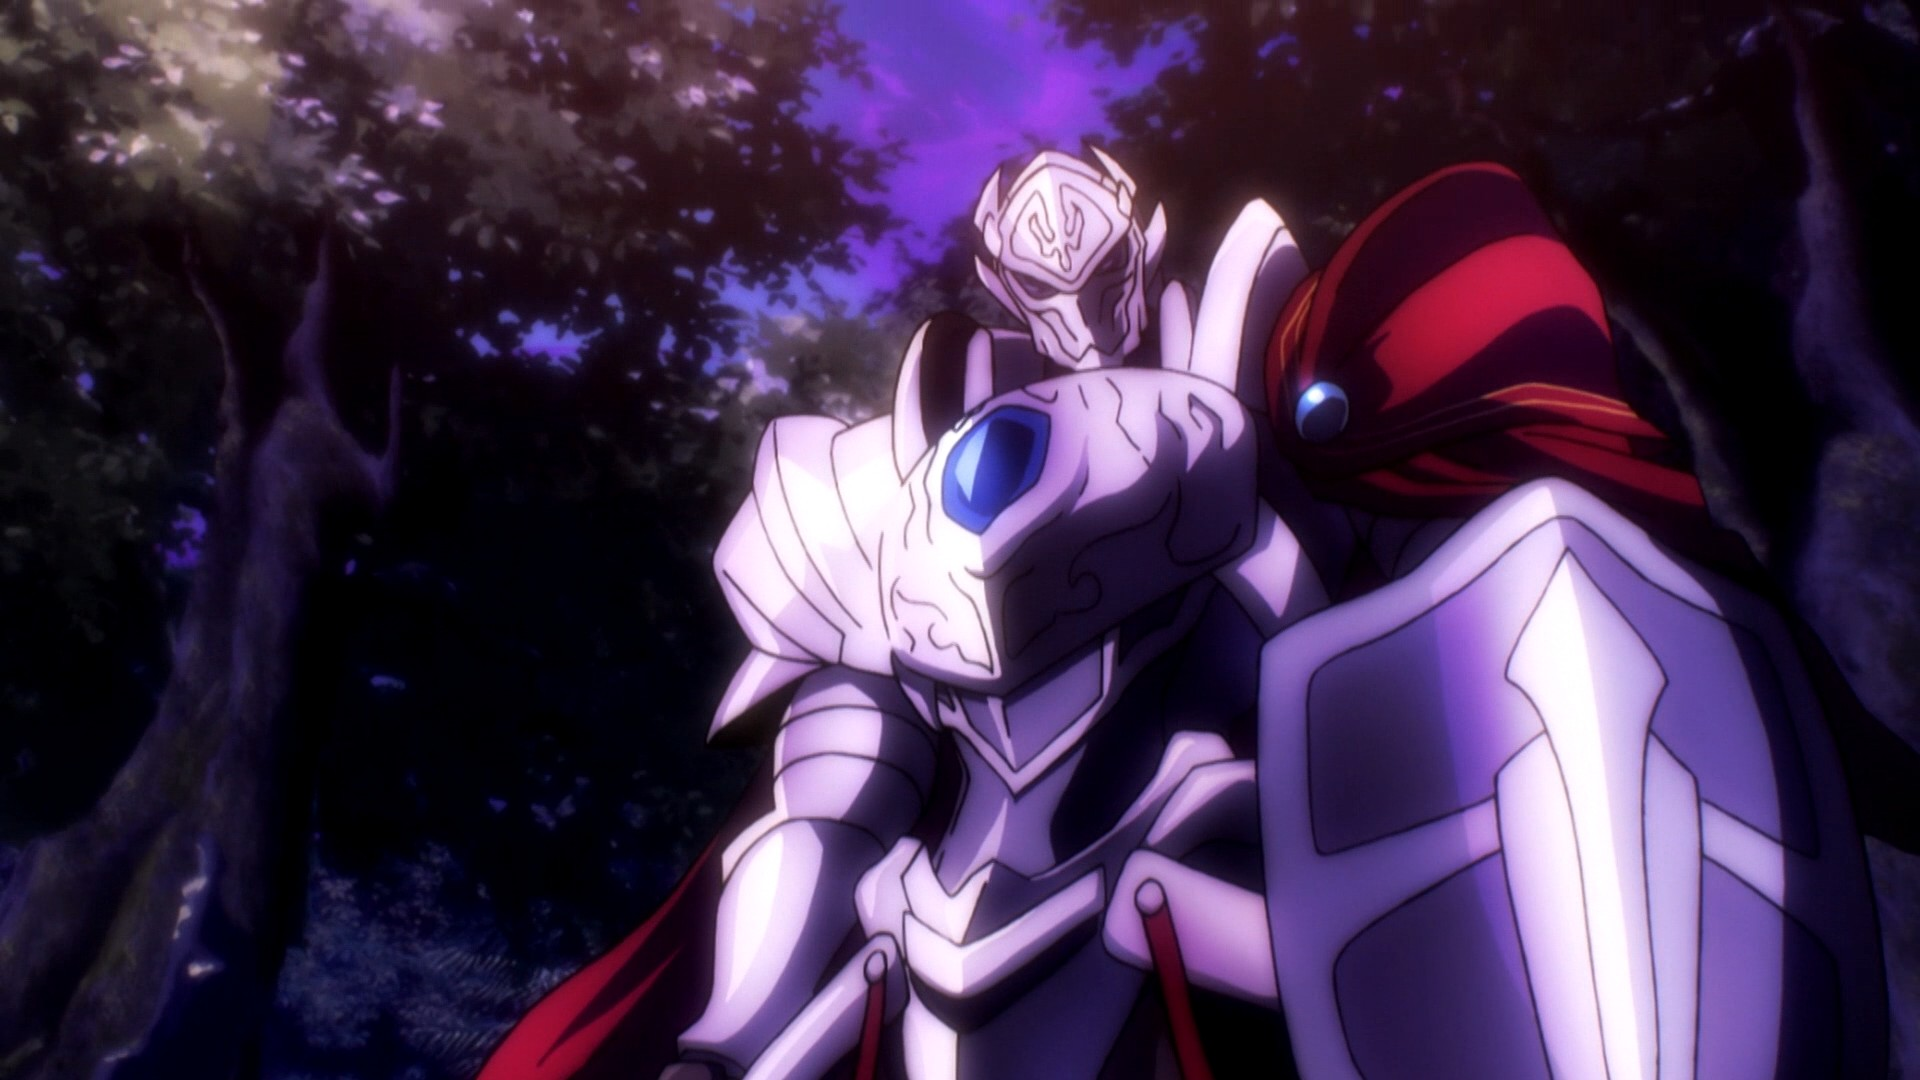 Overlord anime wallpaper download free stunning - Wallpaper computer anime ...